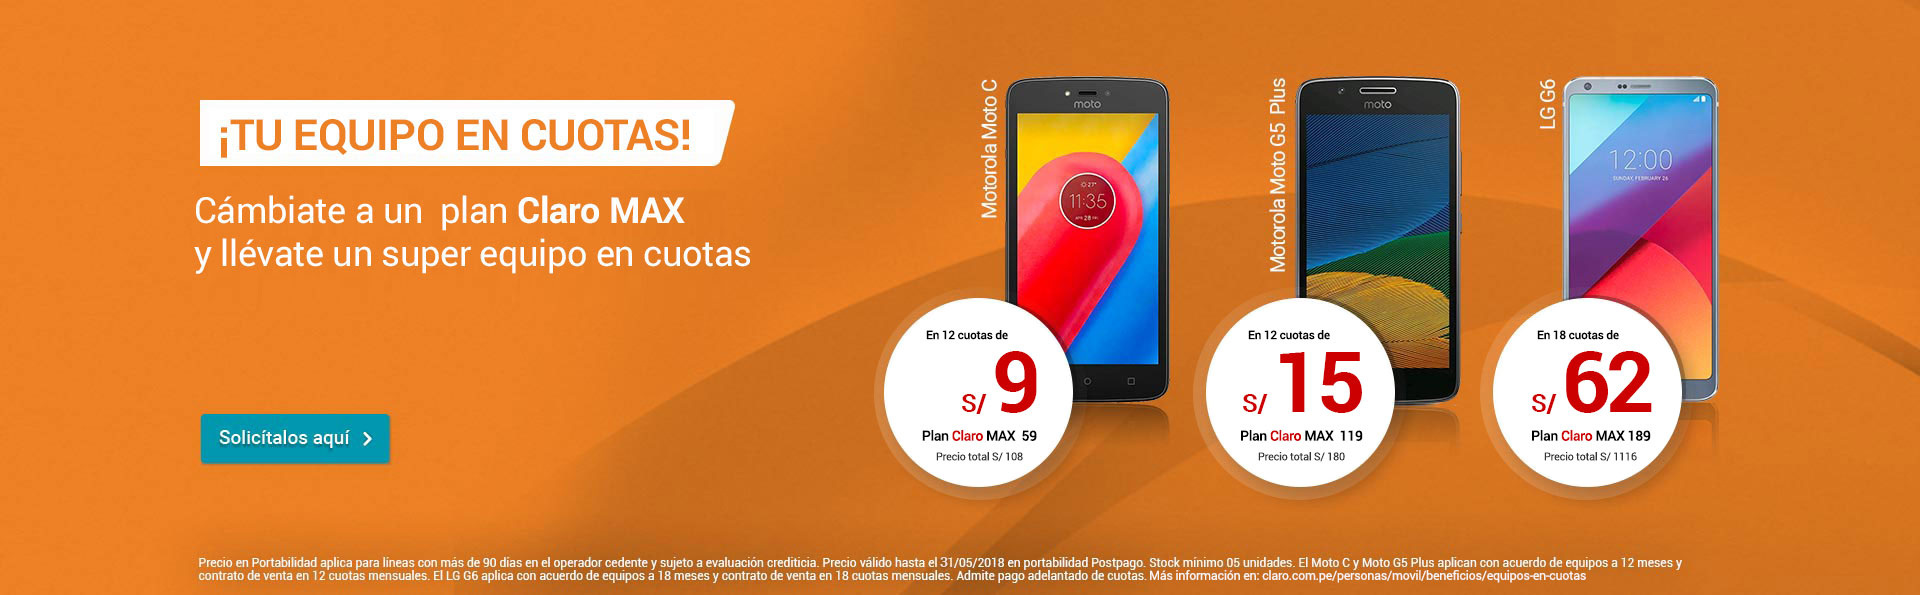 BANNER CUOTAS 3 EQUIPOS